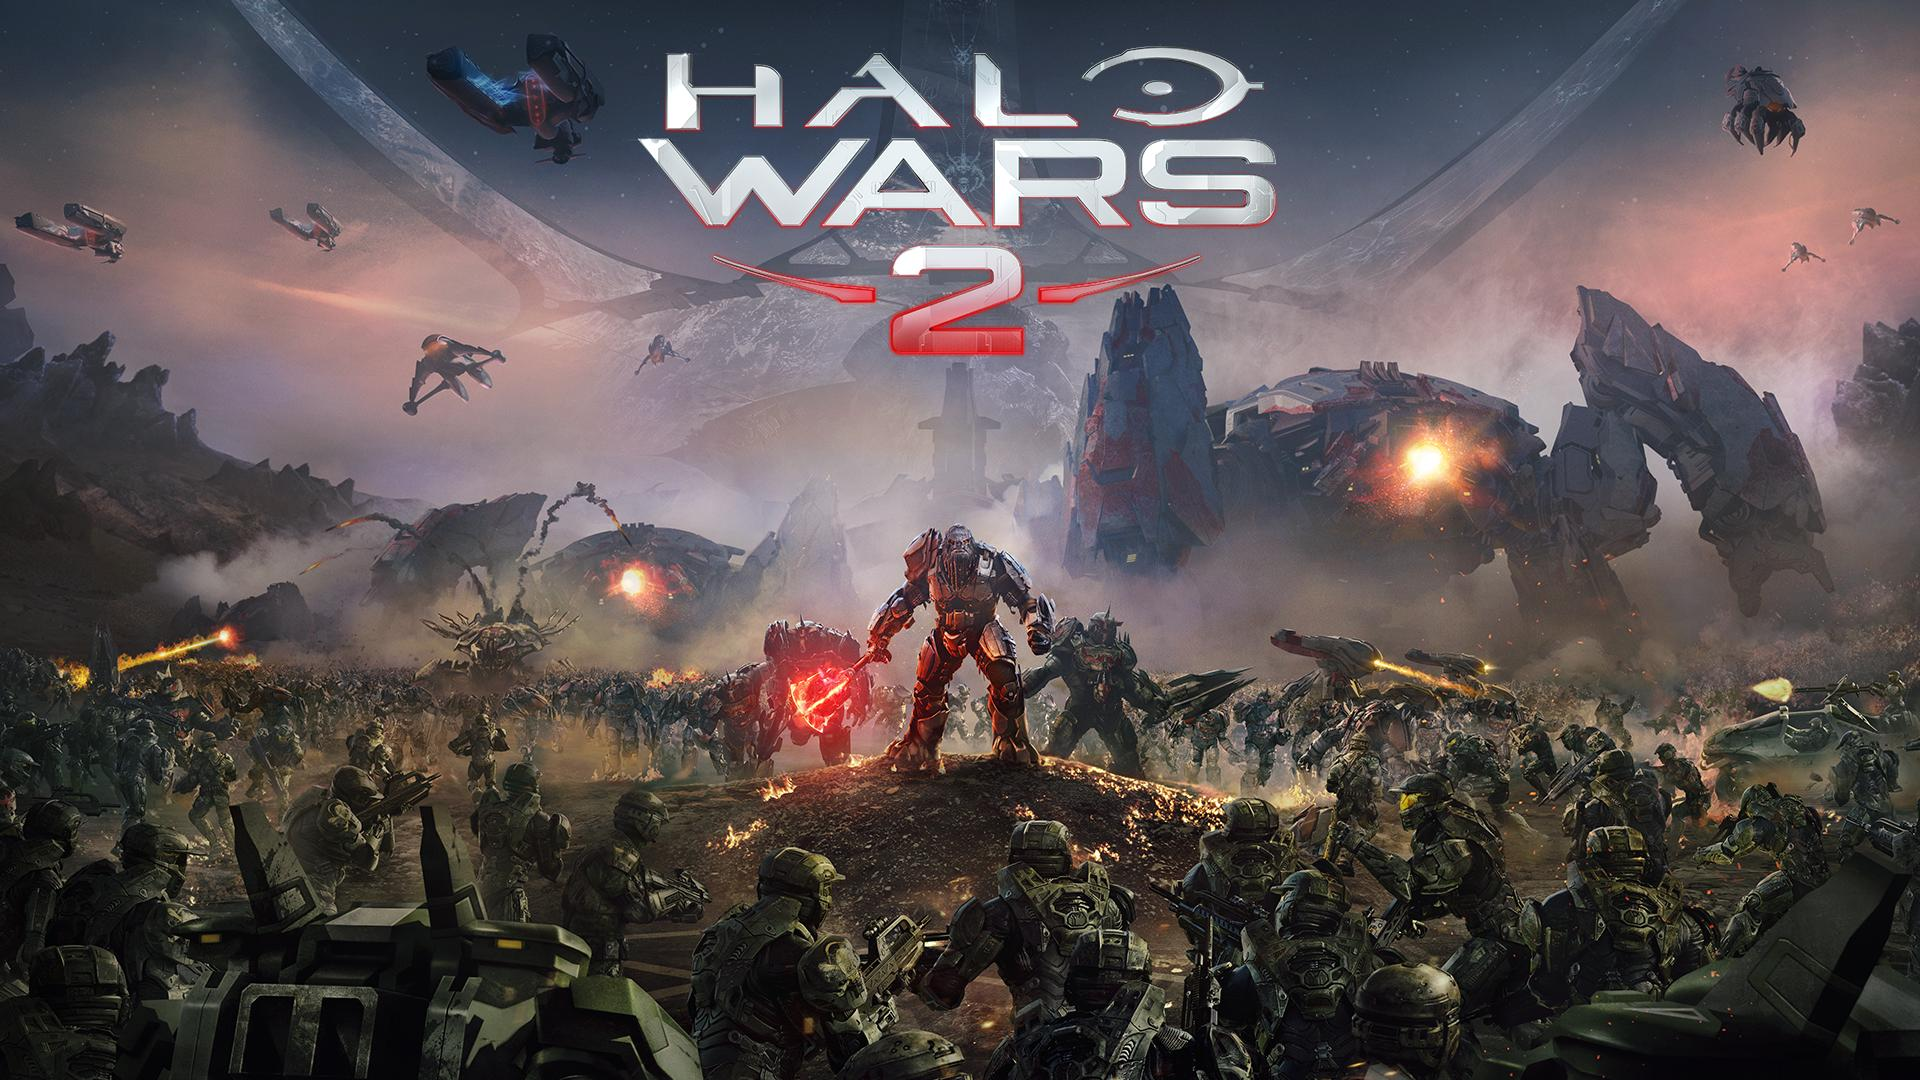 halowars2_screenshot1